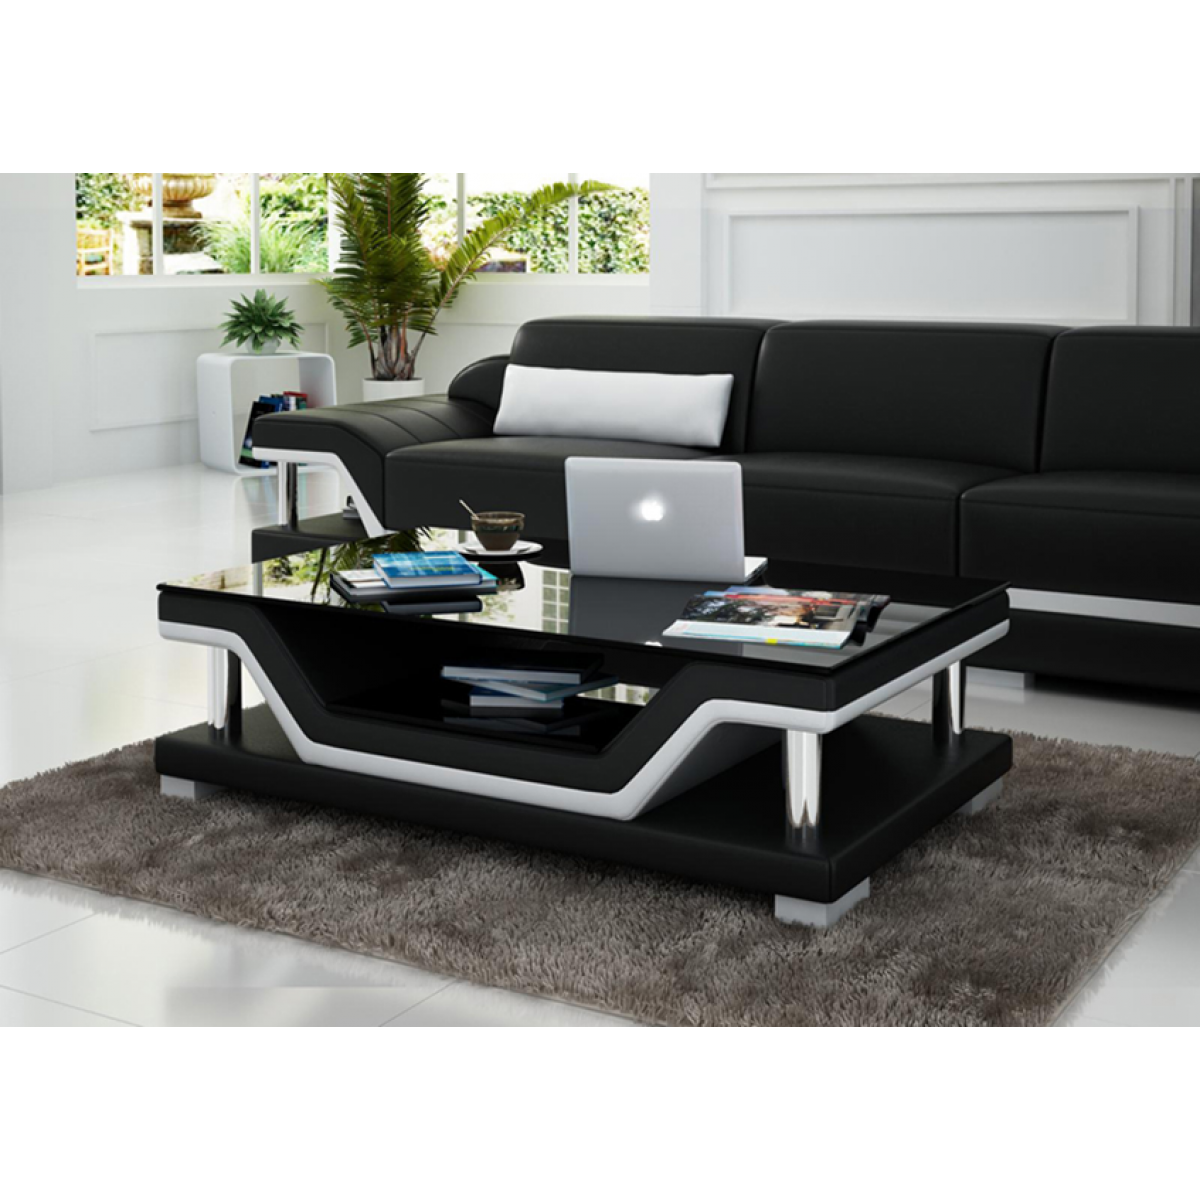 table basse design milano pop. Black Bedroom Furniture Sets. Home Design Ideas